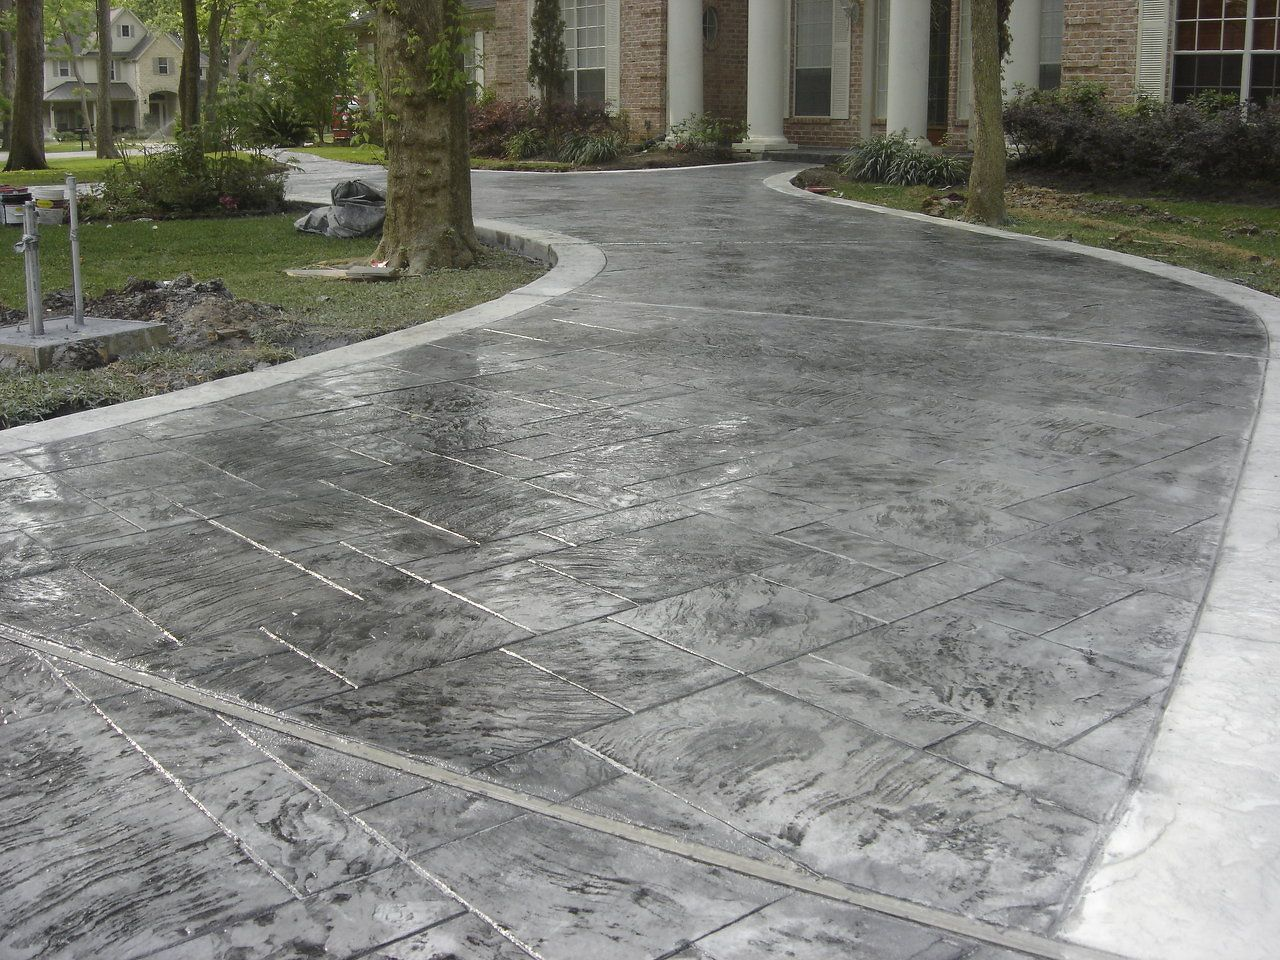 Concrete Driveway Design Ideas stamped and colored decorative concrete drivewaythrough coloring and stamp patterns concrete driveways can enhance the curb appeal of a home Concrete Pavers Driveway Blog Of Js Custom Concrete Patios Masonry Flagstone Denver